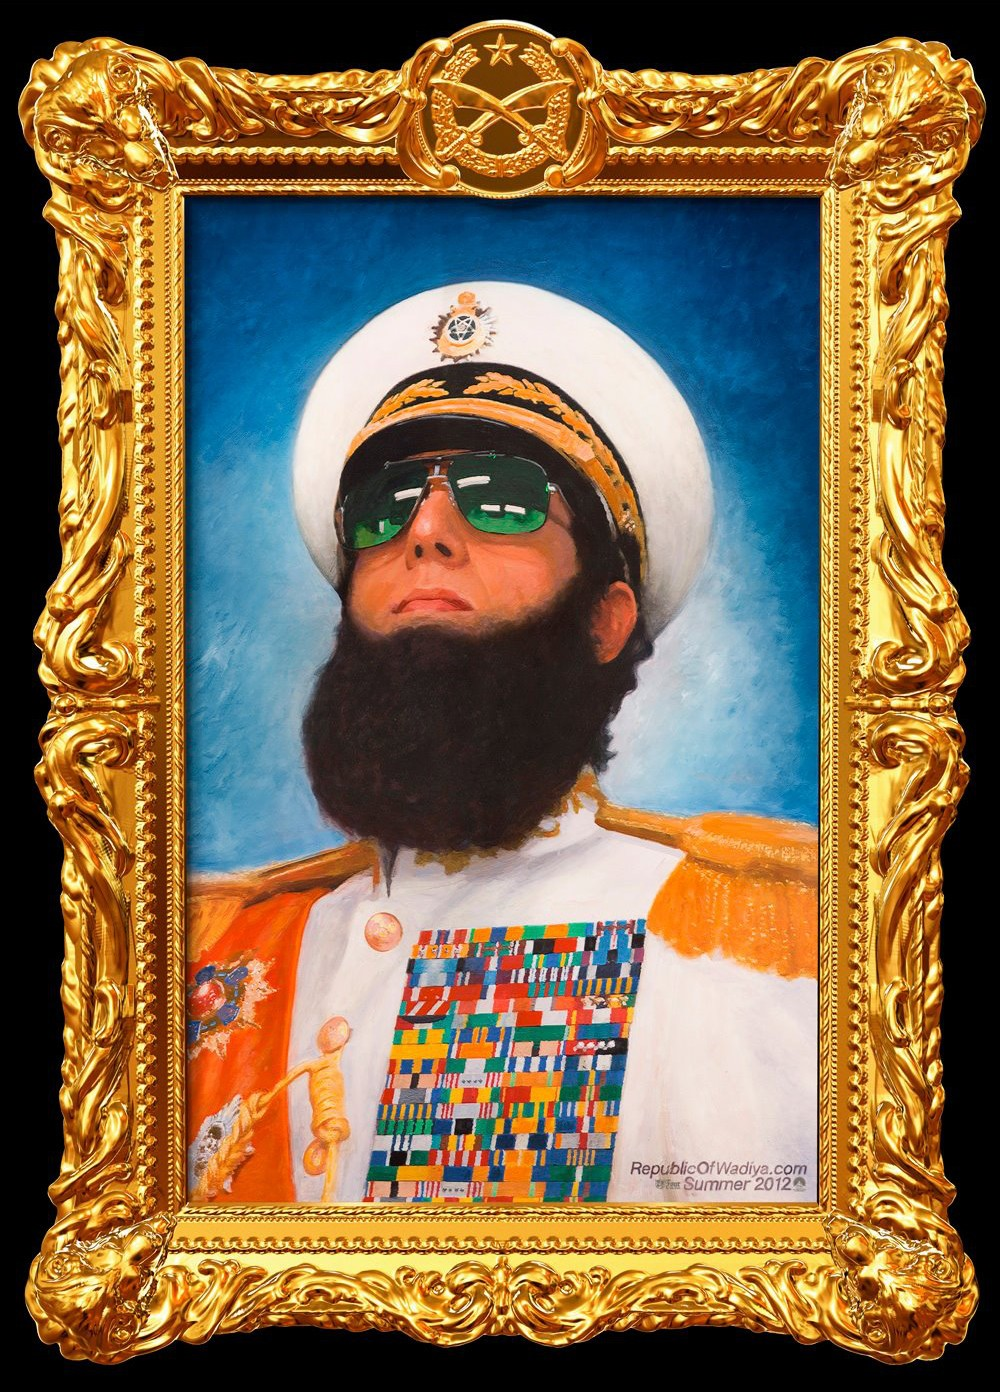 The Dictator (2012) | Moviepedia | FANDOM powered by Wikia